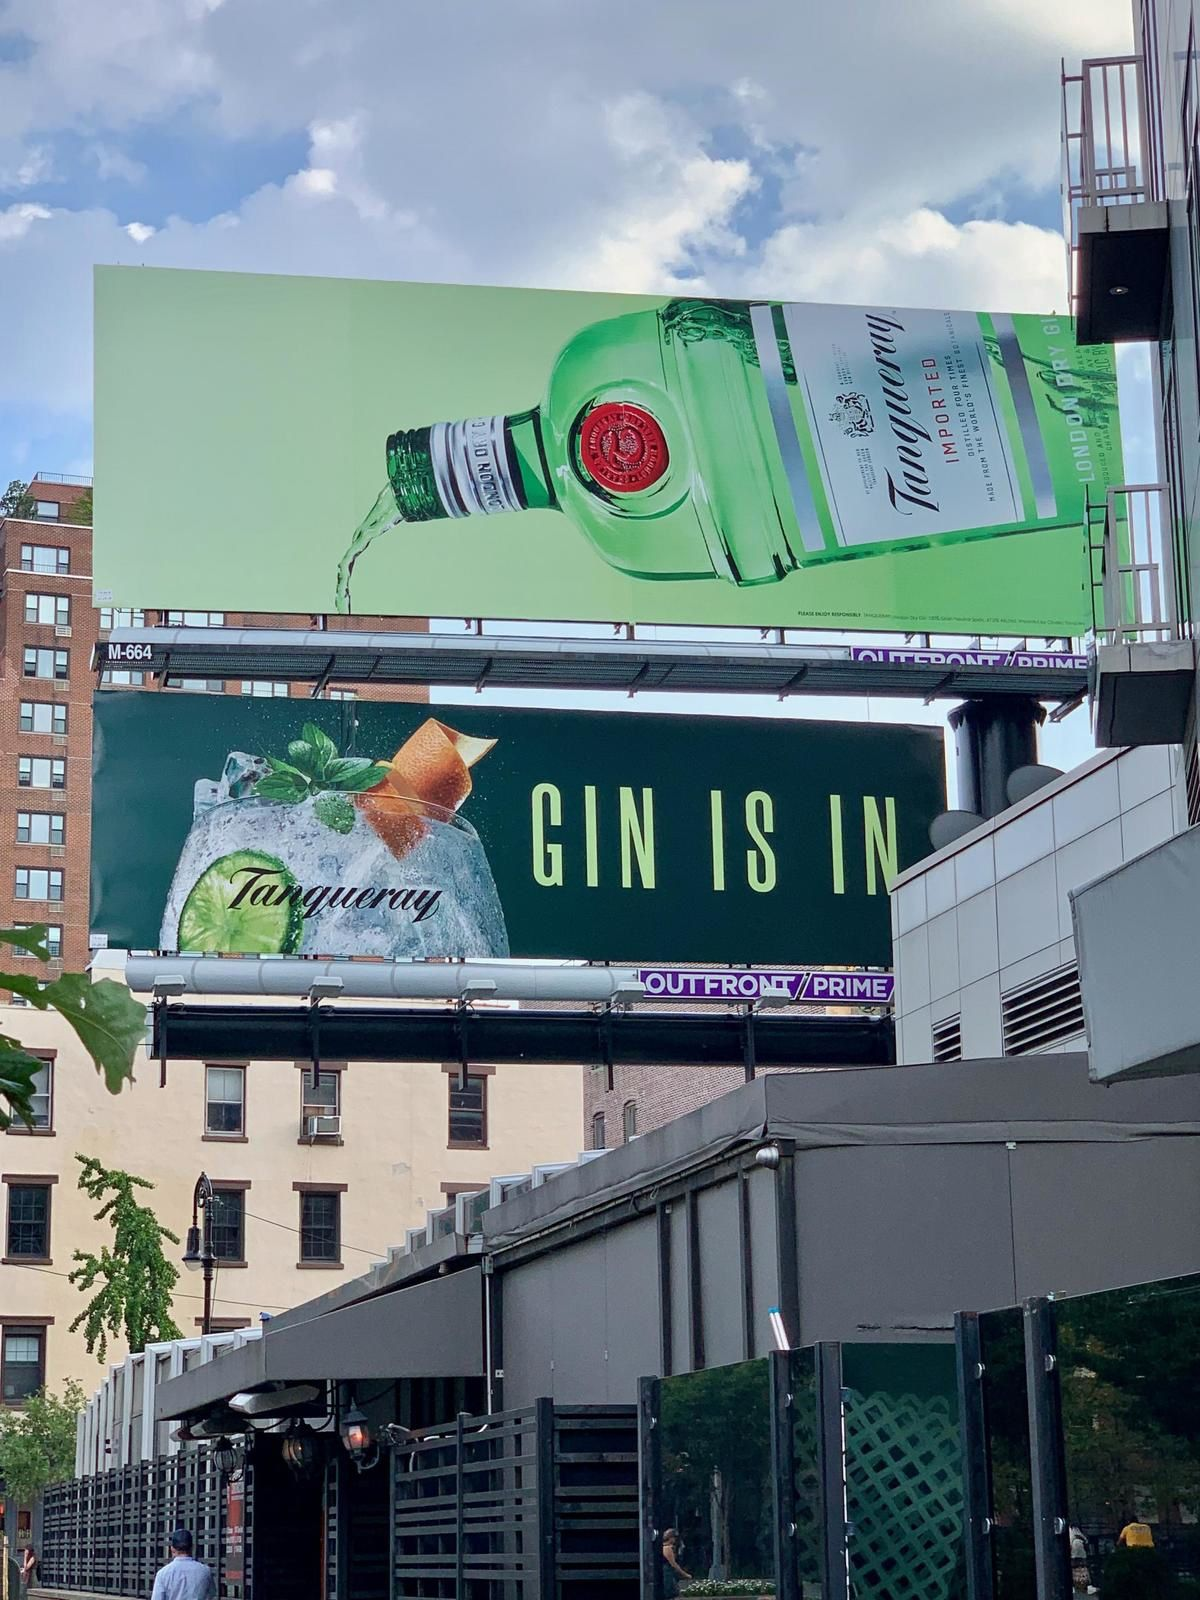 """Tanqueray : """"Gin is in"""" (gin) I Agence : YARD, New York, Etats-Unis (août 2019)"""